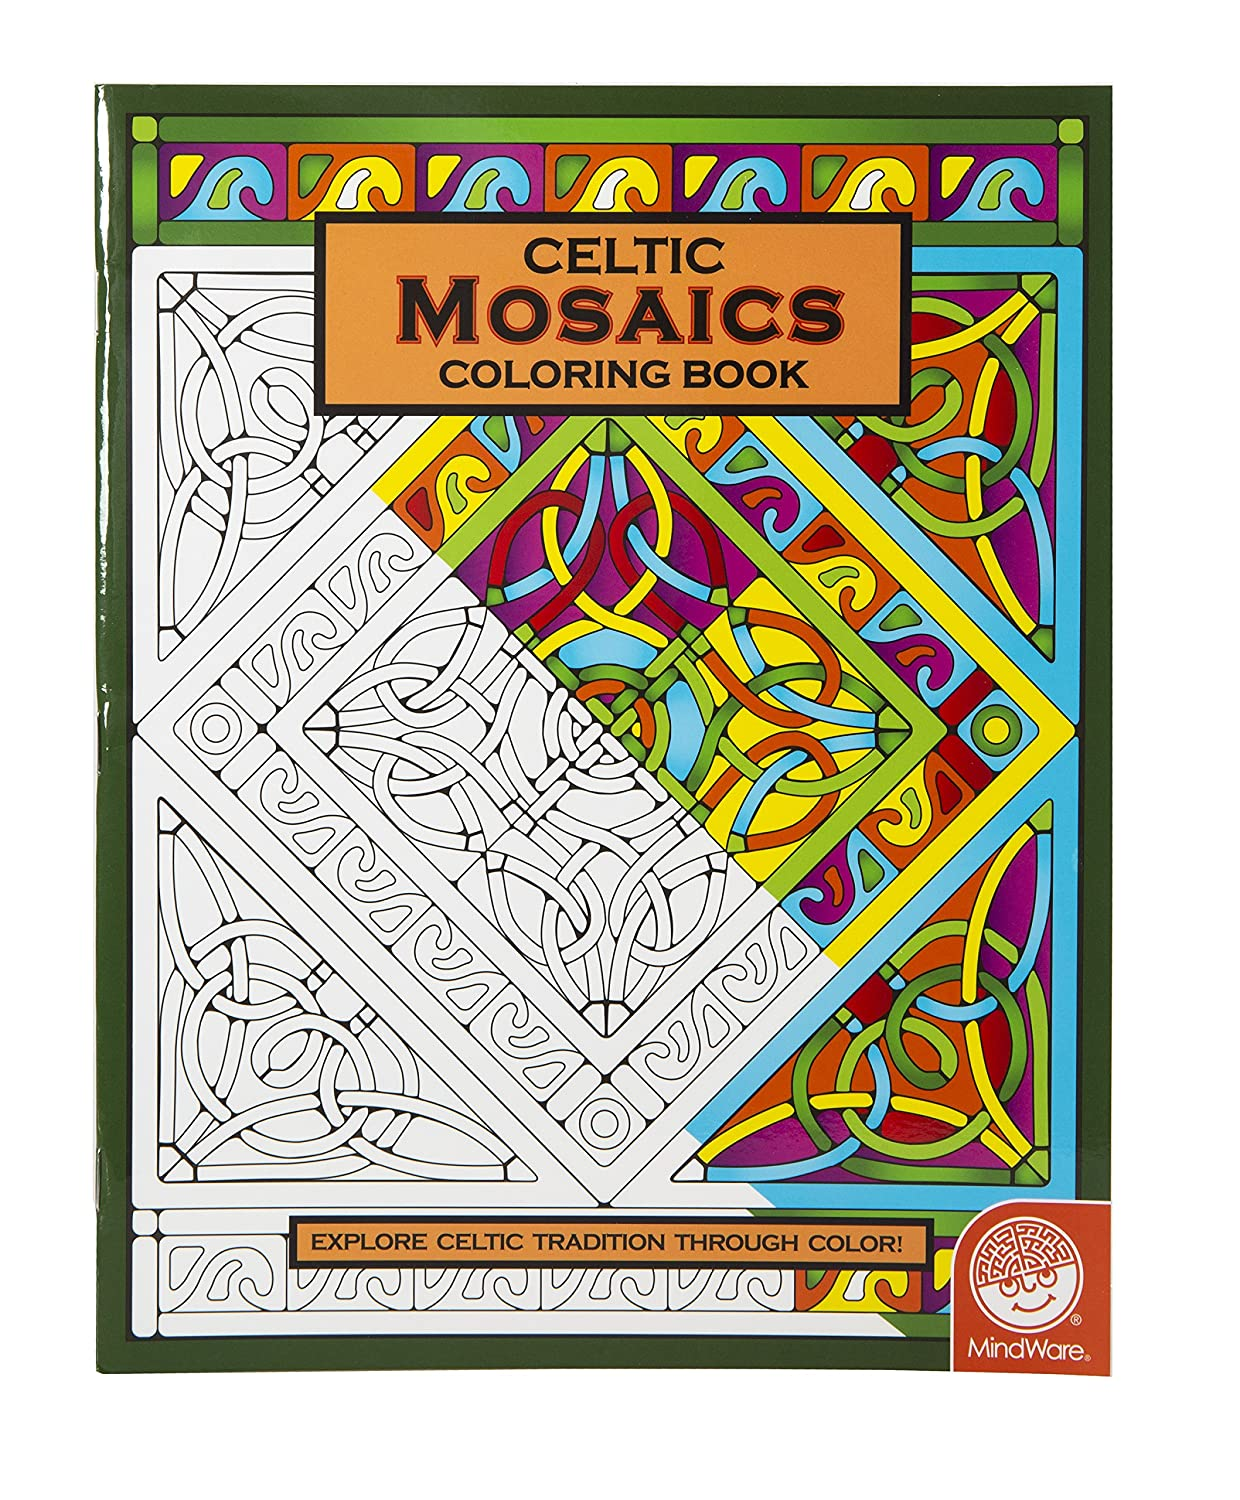 Amazoncom MindWare Celtic Mosaic Coloring Book 23 Unique